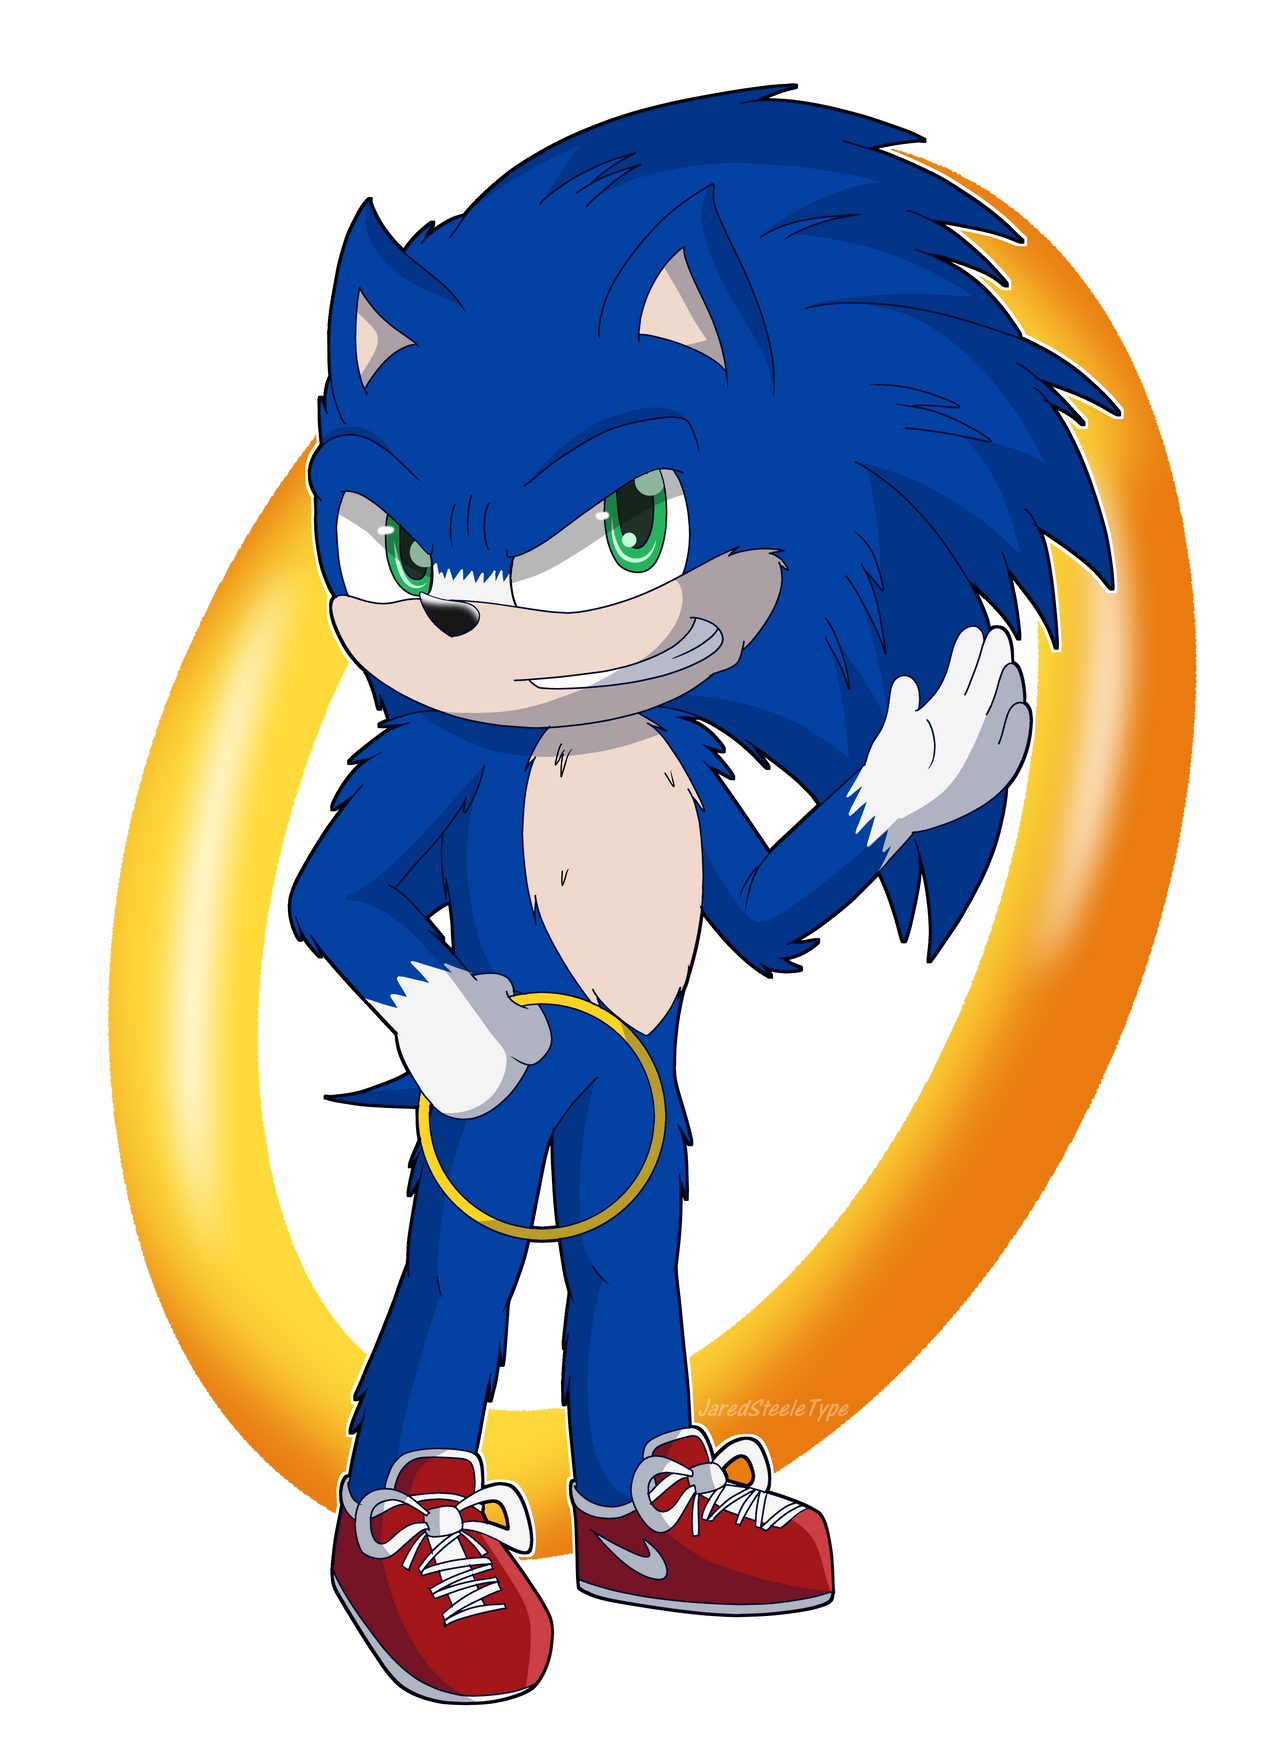 Fanart 2019 Movie Sonic By Jaredsteeletype On Deviantart